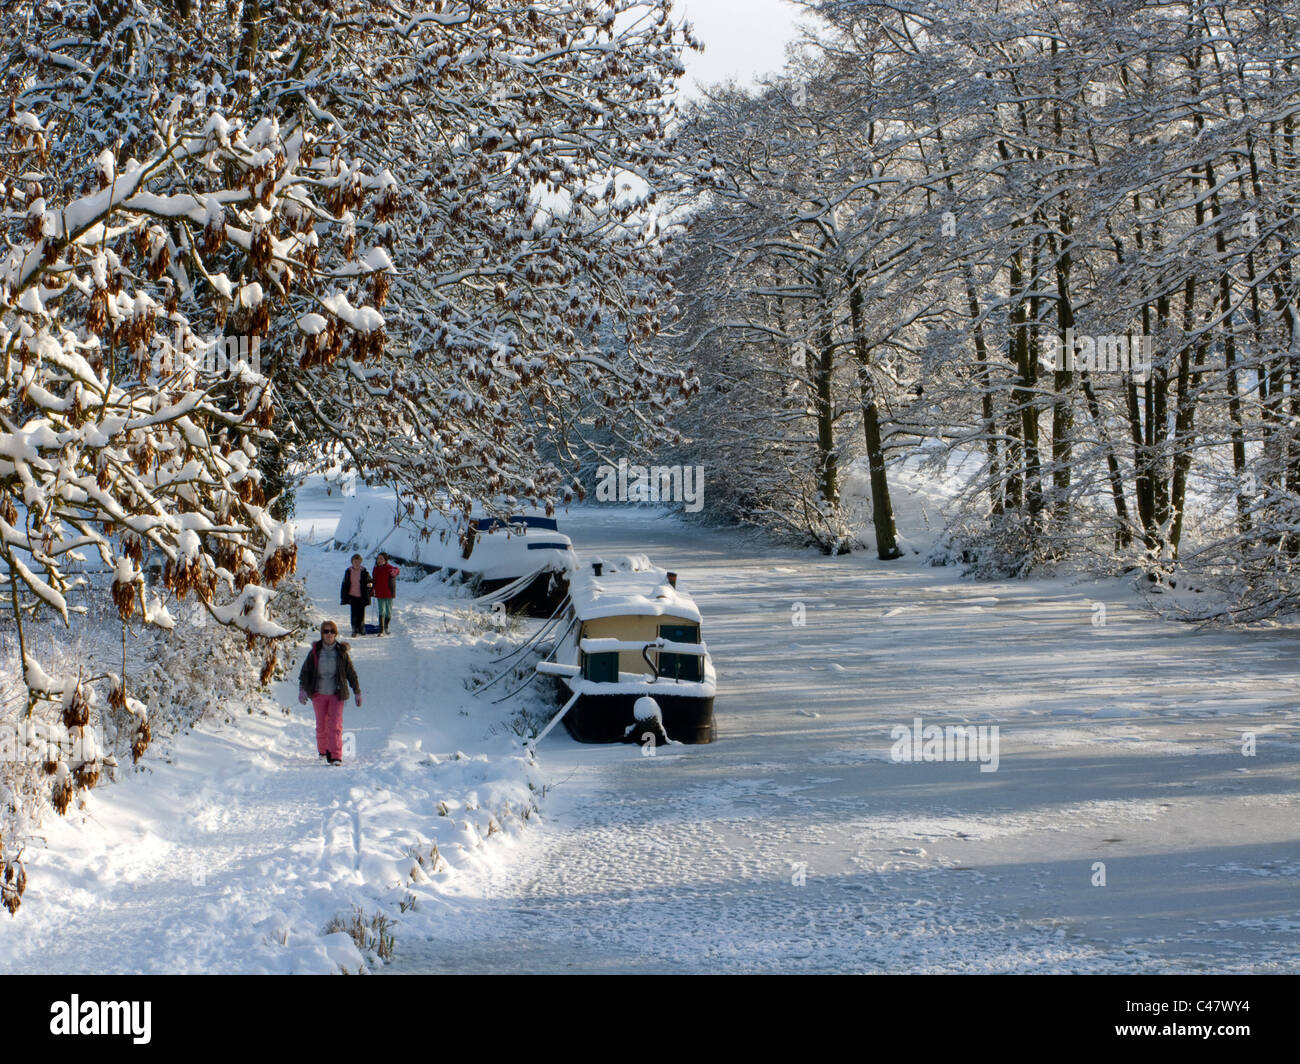 Walkers on the towpath of a frozen Birmingham and Worcester Canal at Alvechurch, Worcestershire, England - Stock Image